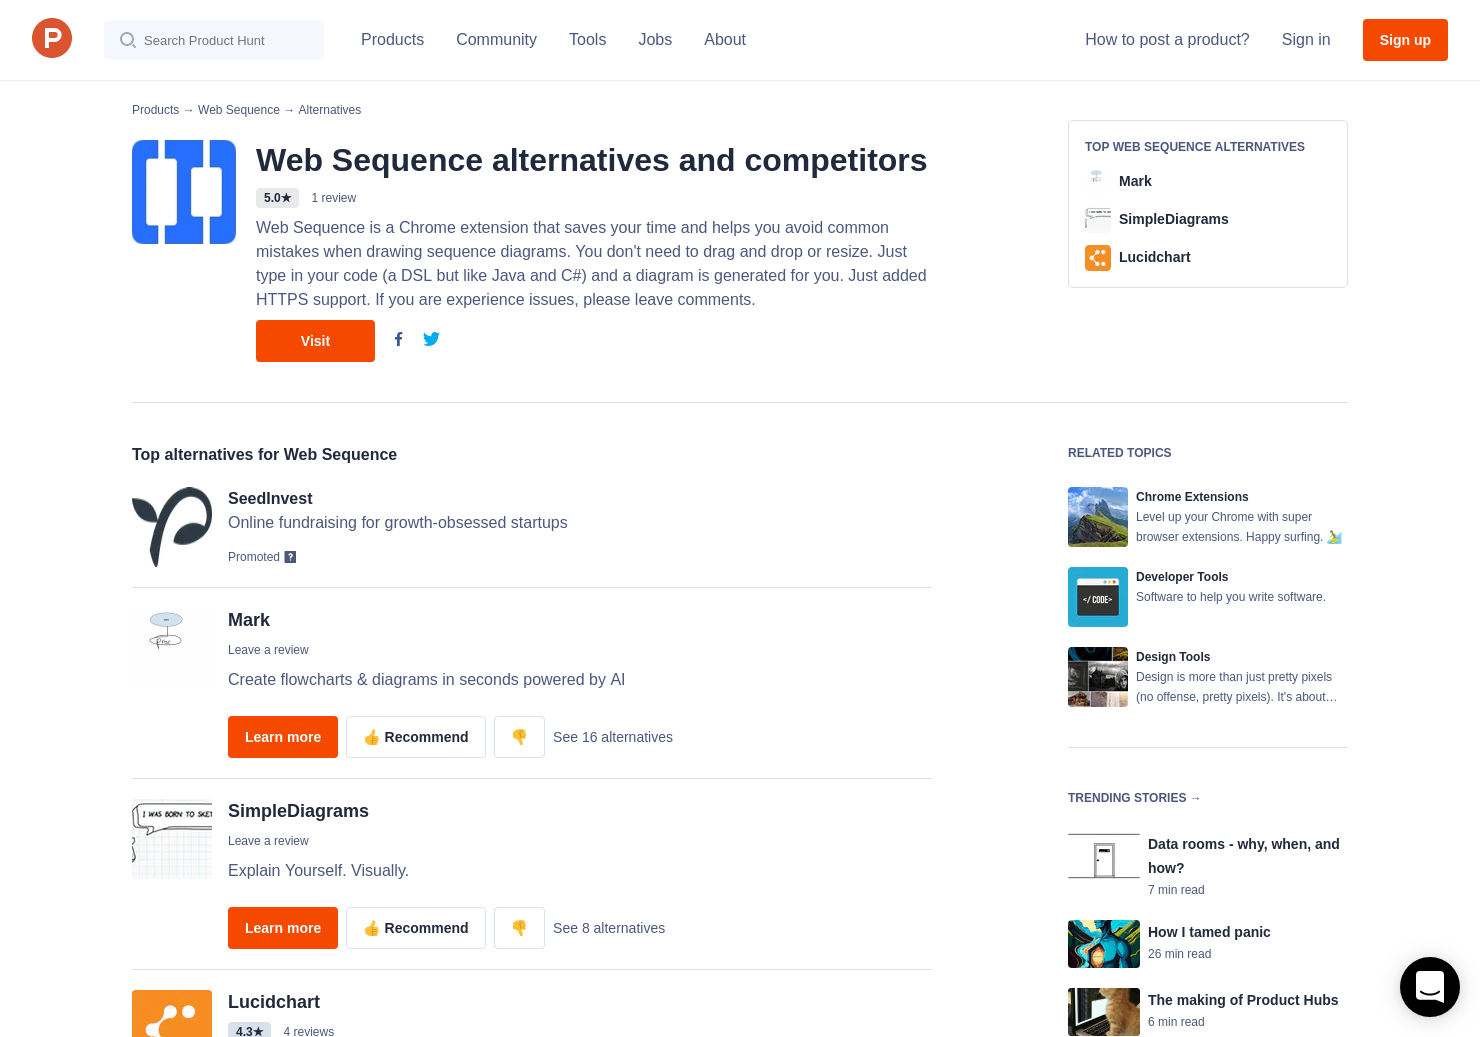 5 Alternatives to Web Sequence for Chrome Extensions